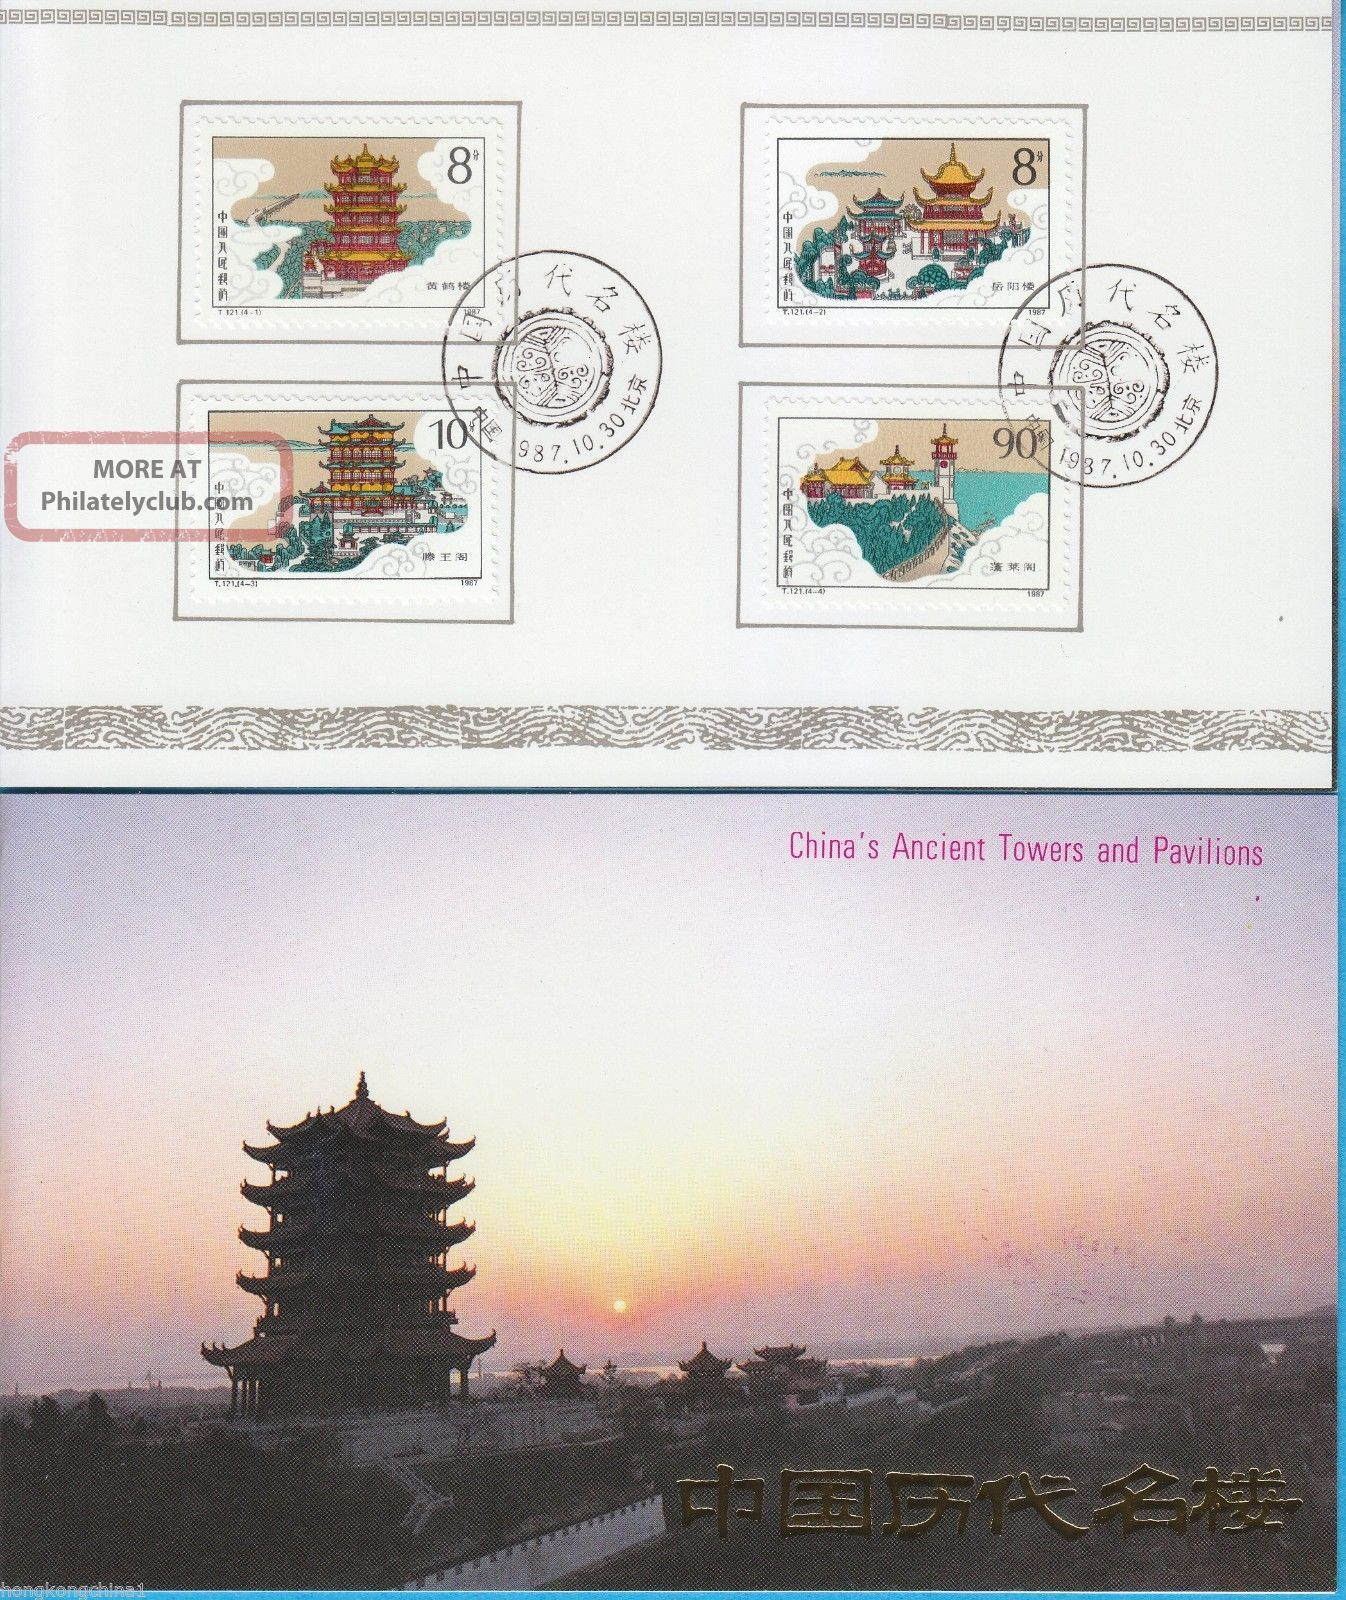 China Stamp Fdc 1987 T121 China ' S Ancient Towers & Pavilions Cn134667 Asia photo